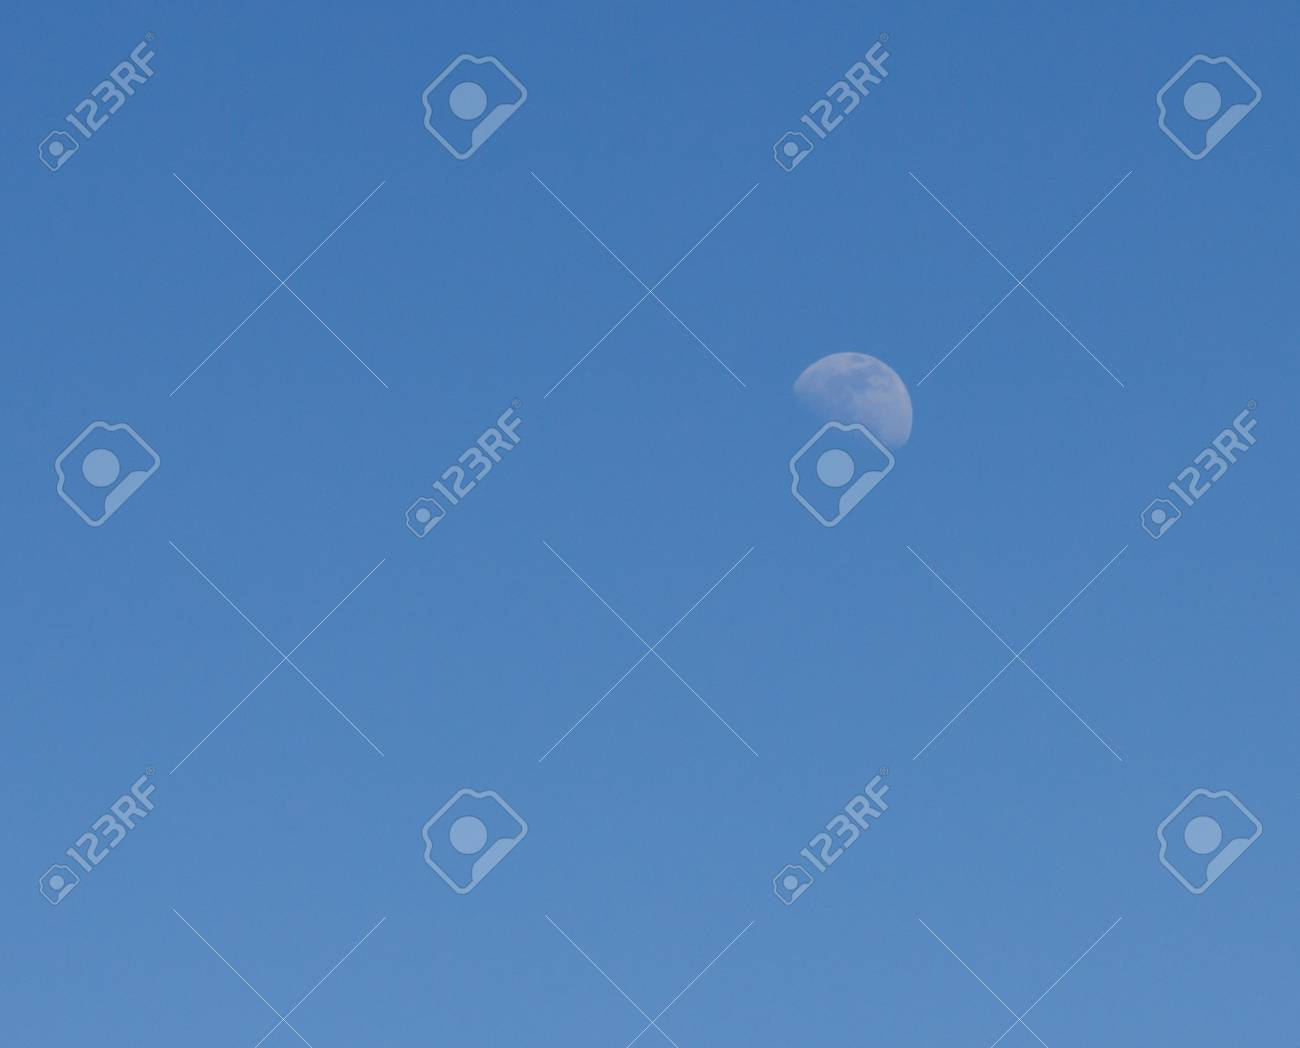 moon on a background of blue sky Stock Photo - 20532078